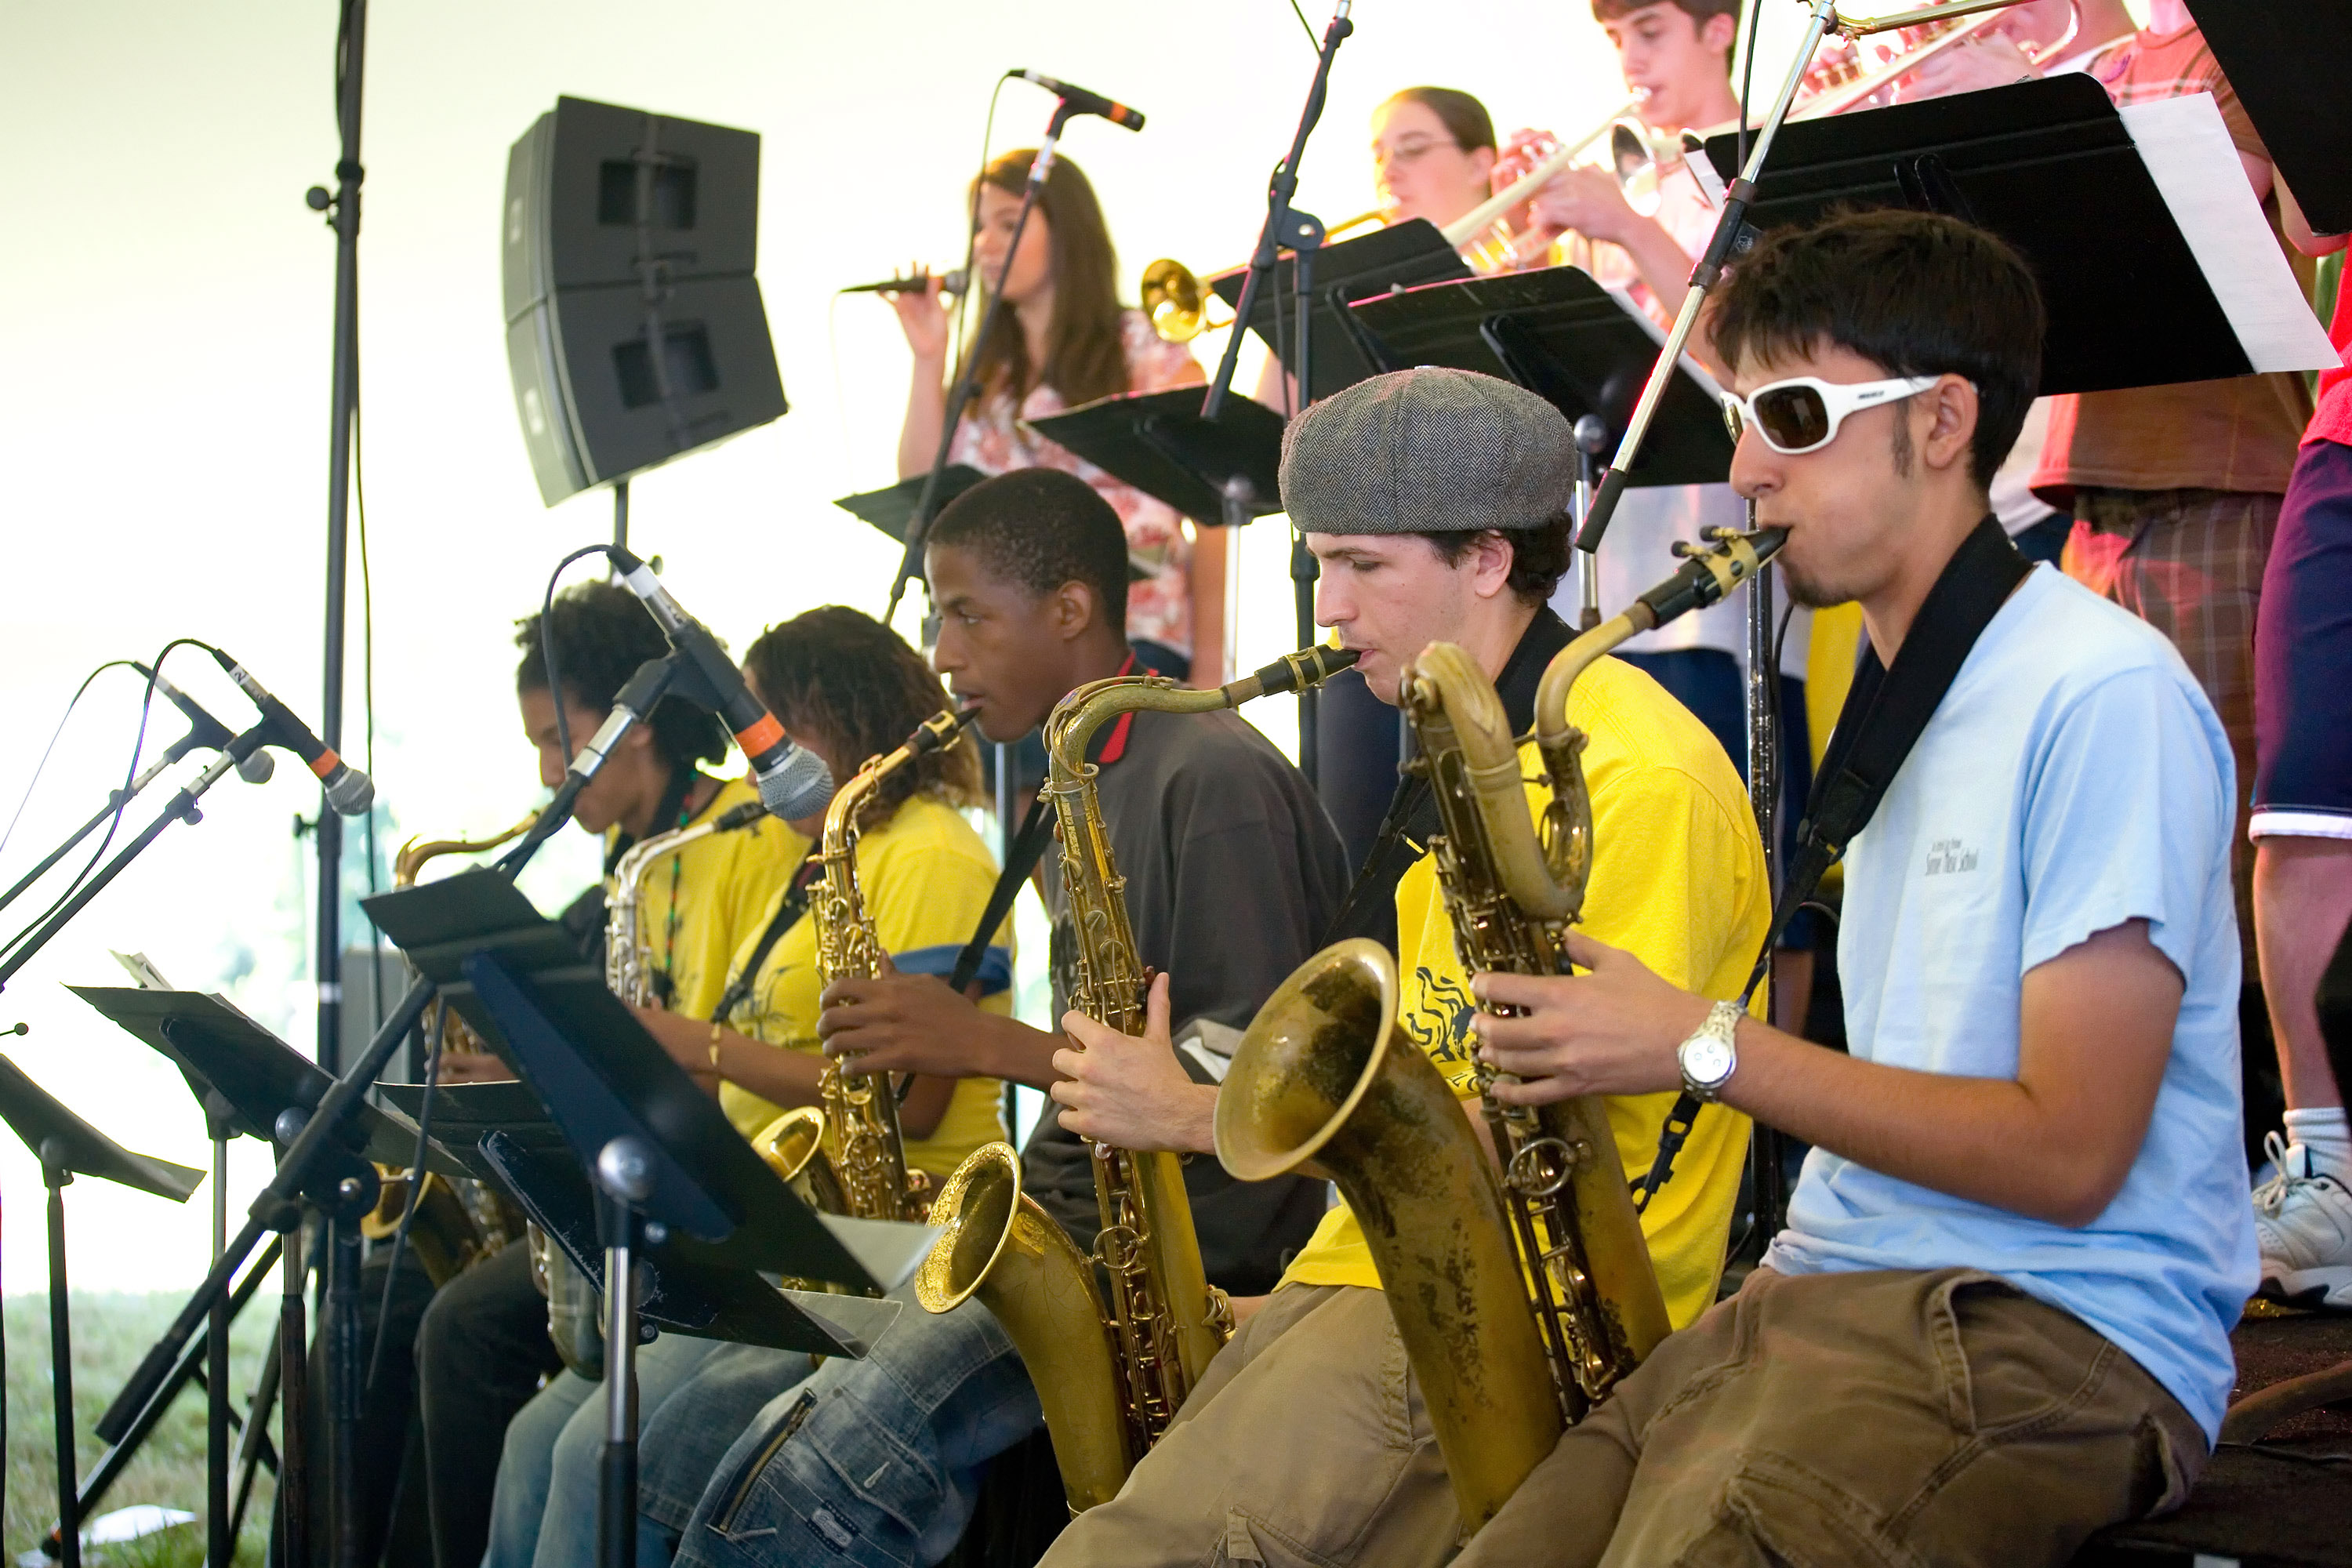 Big Band Performs on the Student Stage at the Litchfield Jazz Fest. Photo by Antonio Monteiro.